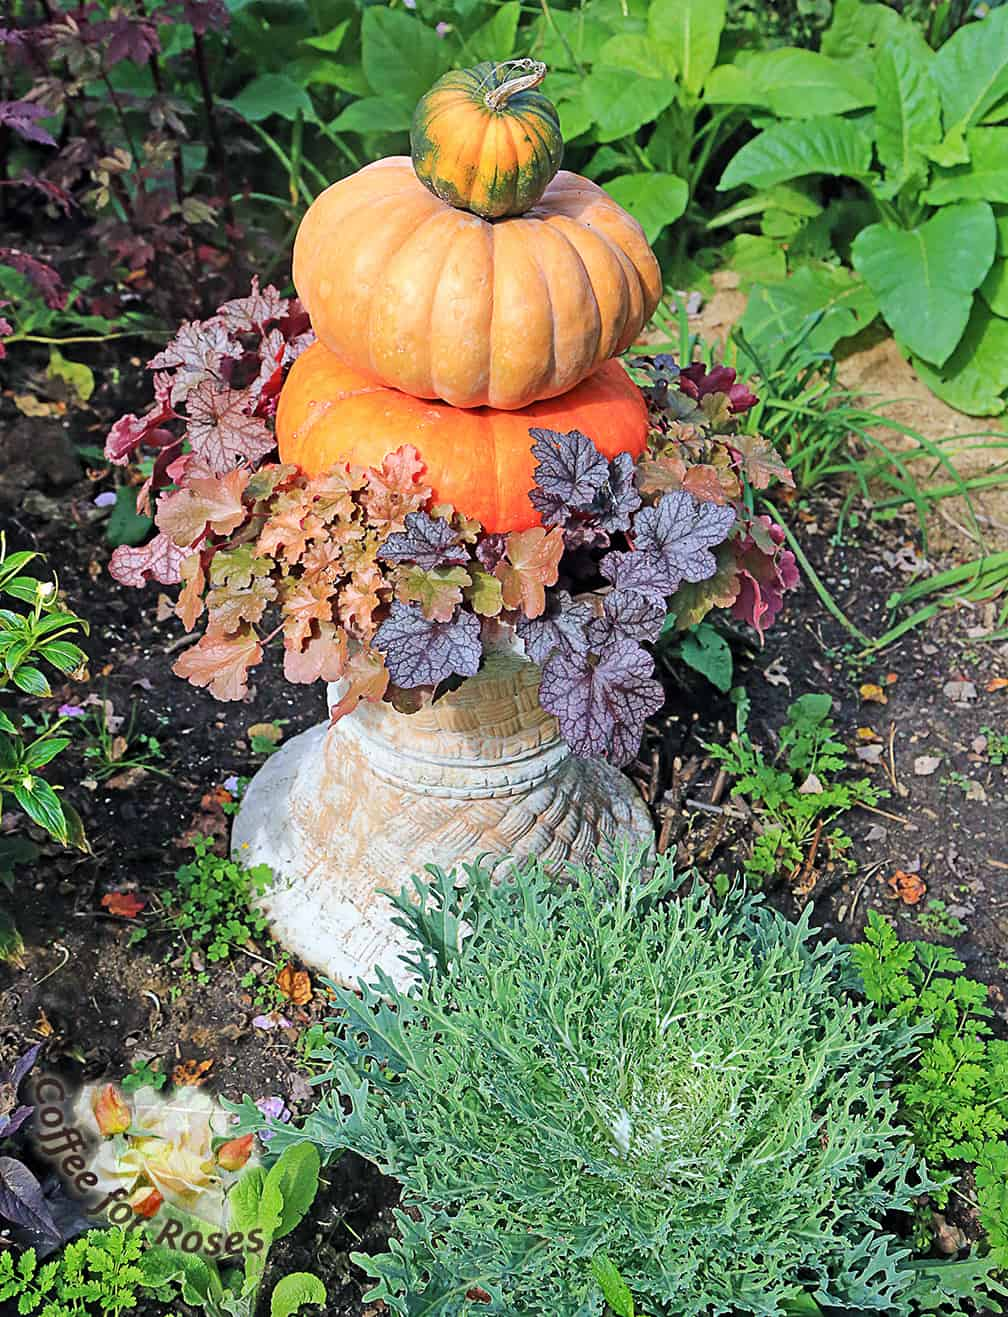 If you don't have an urn you can make a similar base from two flower pots, putting the bottom pot upside down. These two pots created the base and I planted a group of small heuchera plants around the bottom pumpkin.